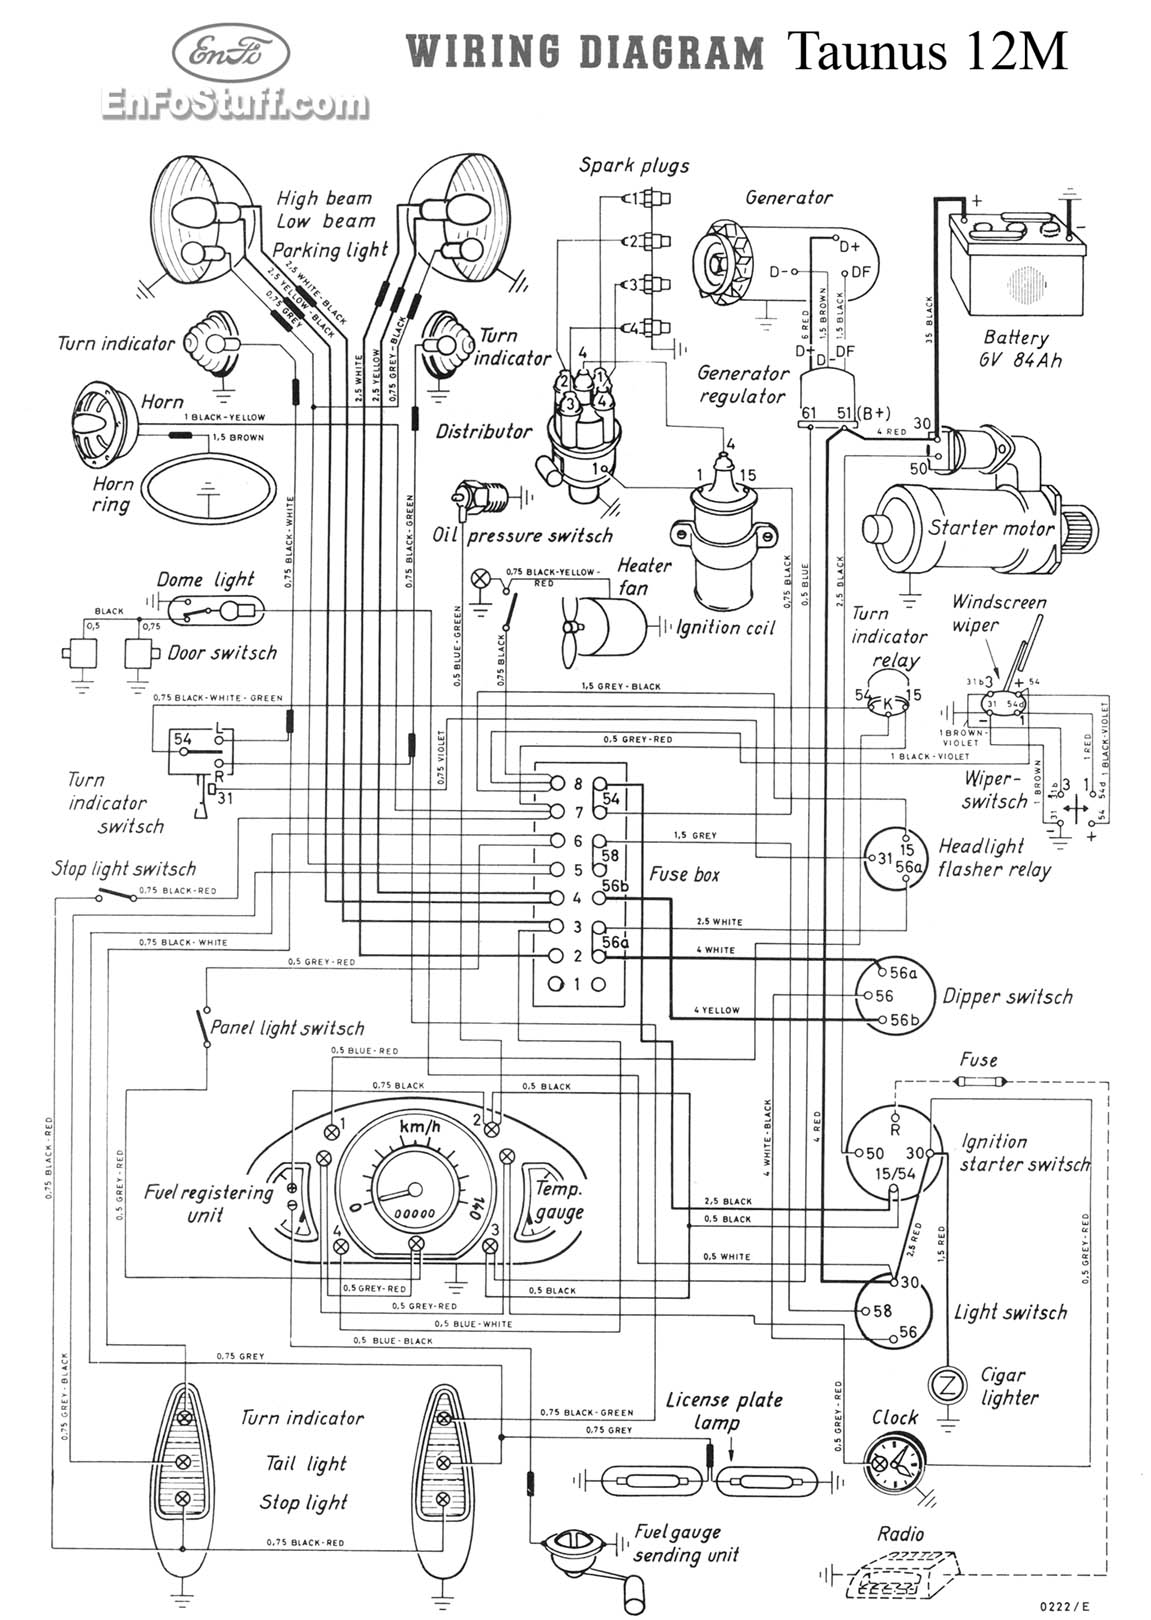 vw golf mk1 ignition wiring diagram aqua rite pdf imageresizertool com